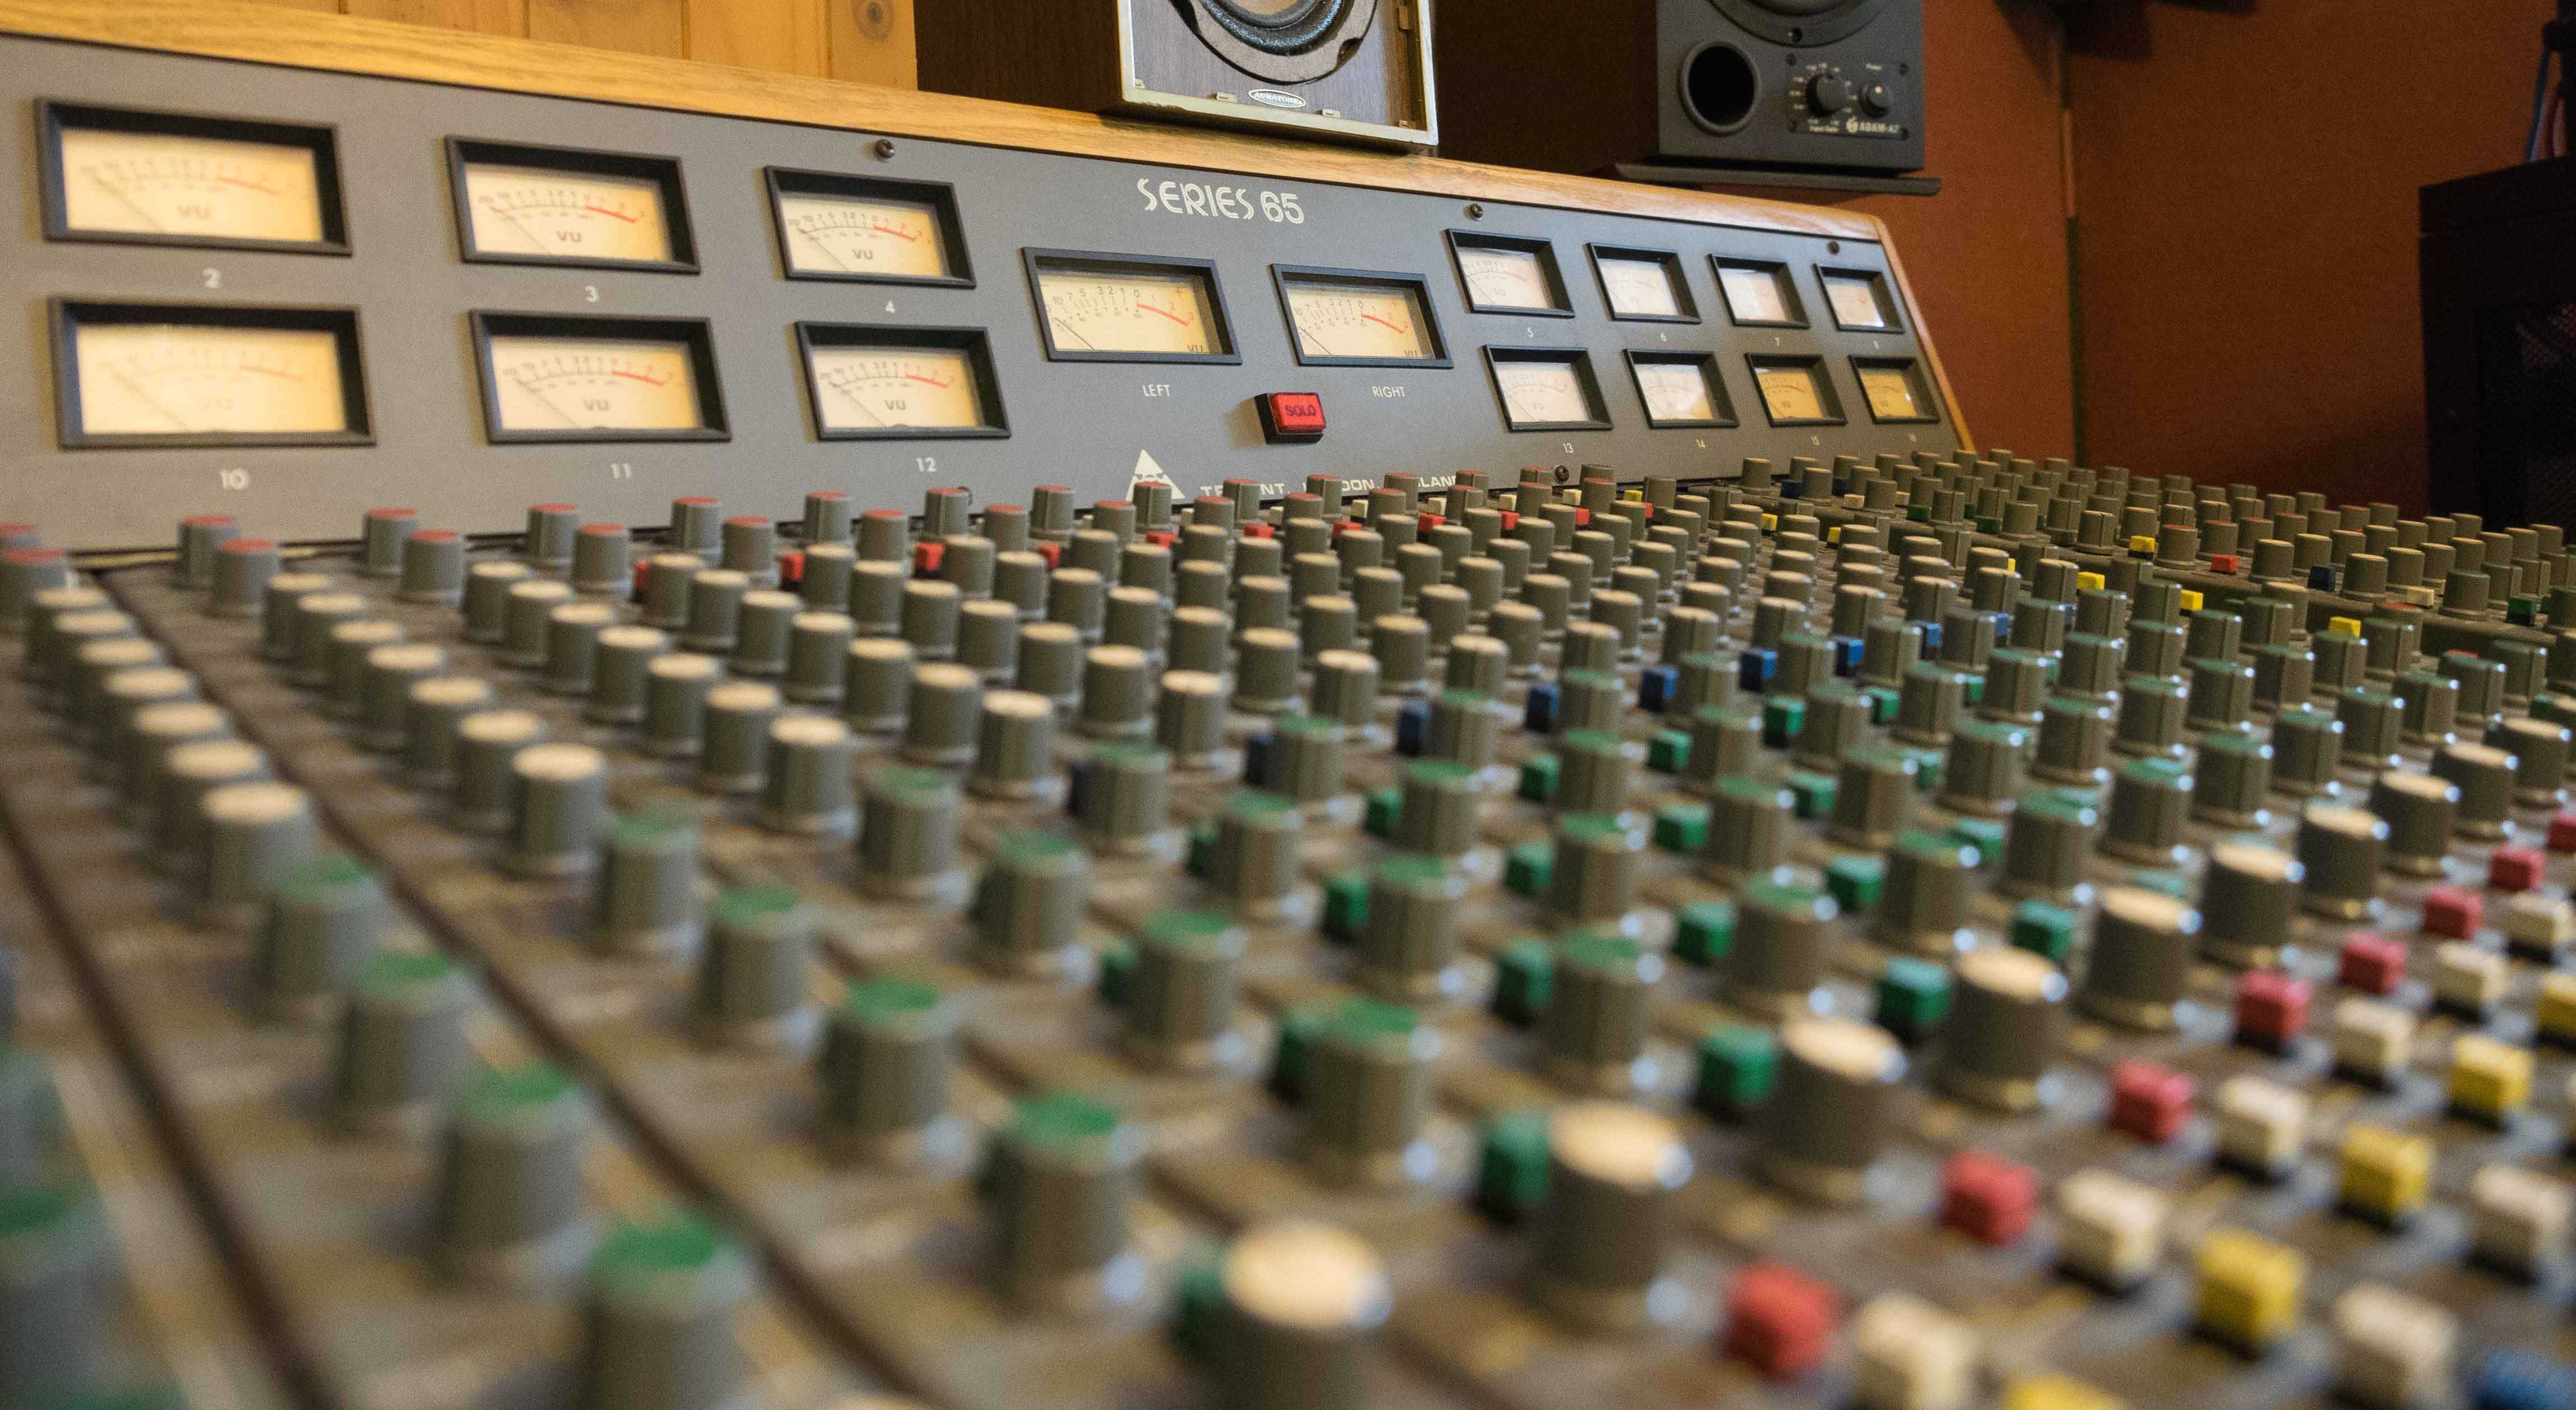 Rohan Sforcina Recording Trident Console Series 65 Gear